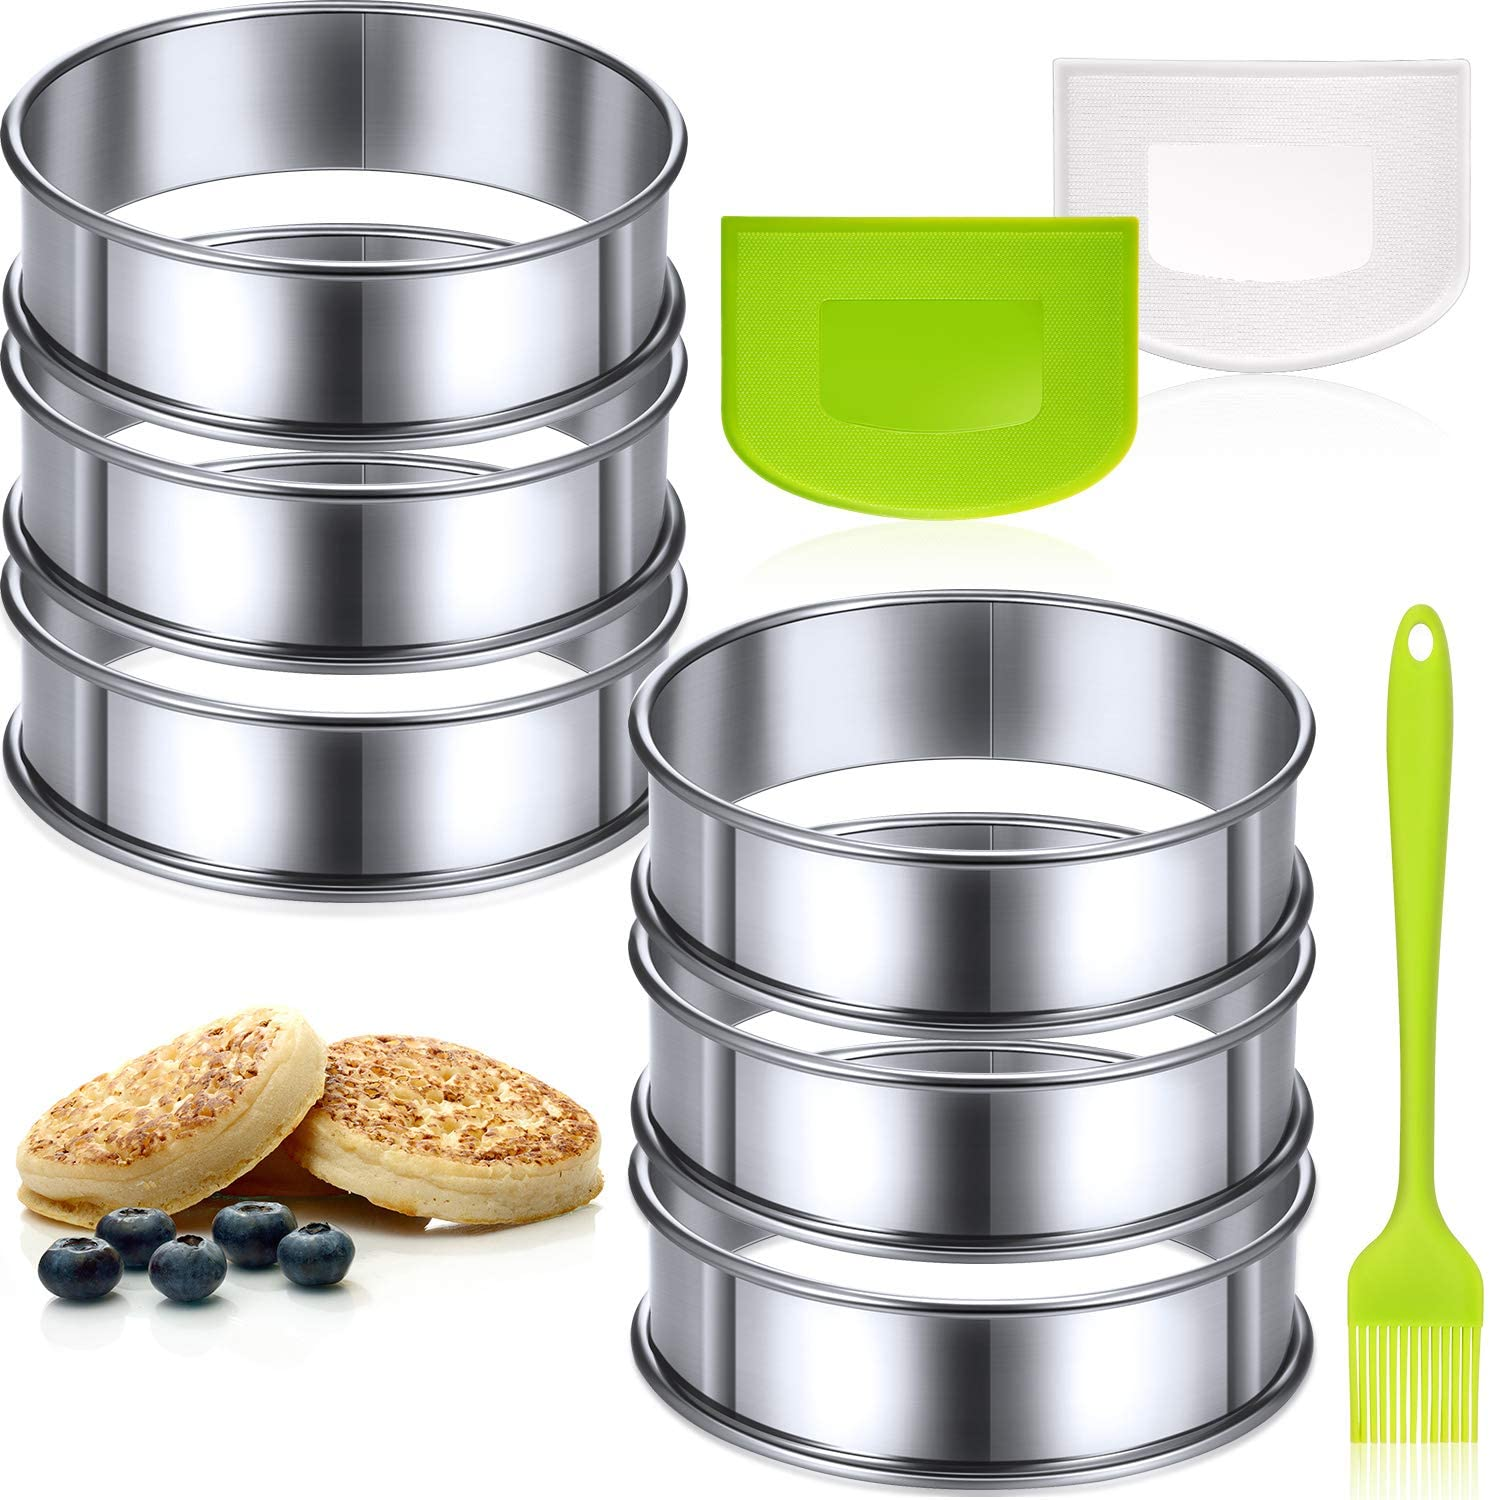 6 Pieces 3.15 Inch Double Rolled Tart Rings Stainless Steel Muffin Rings with 2 Pieces Dough Scrapers and Oil Brush for Home Cooking Baking Tools